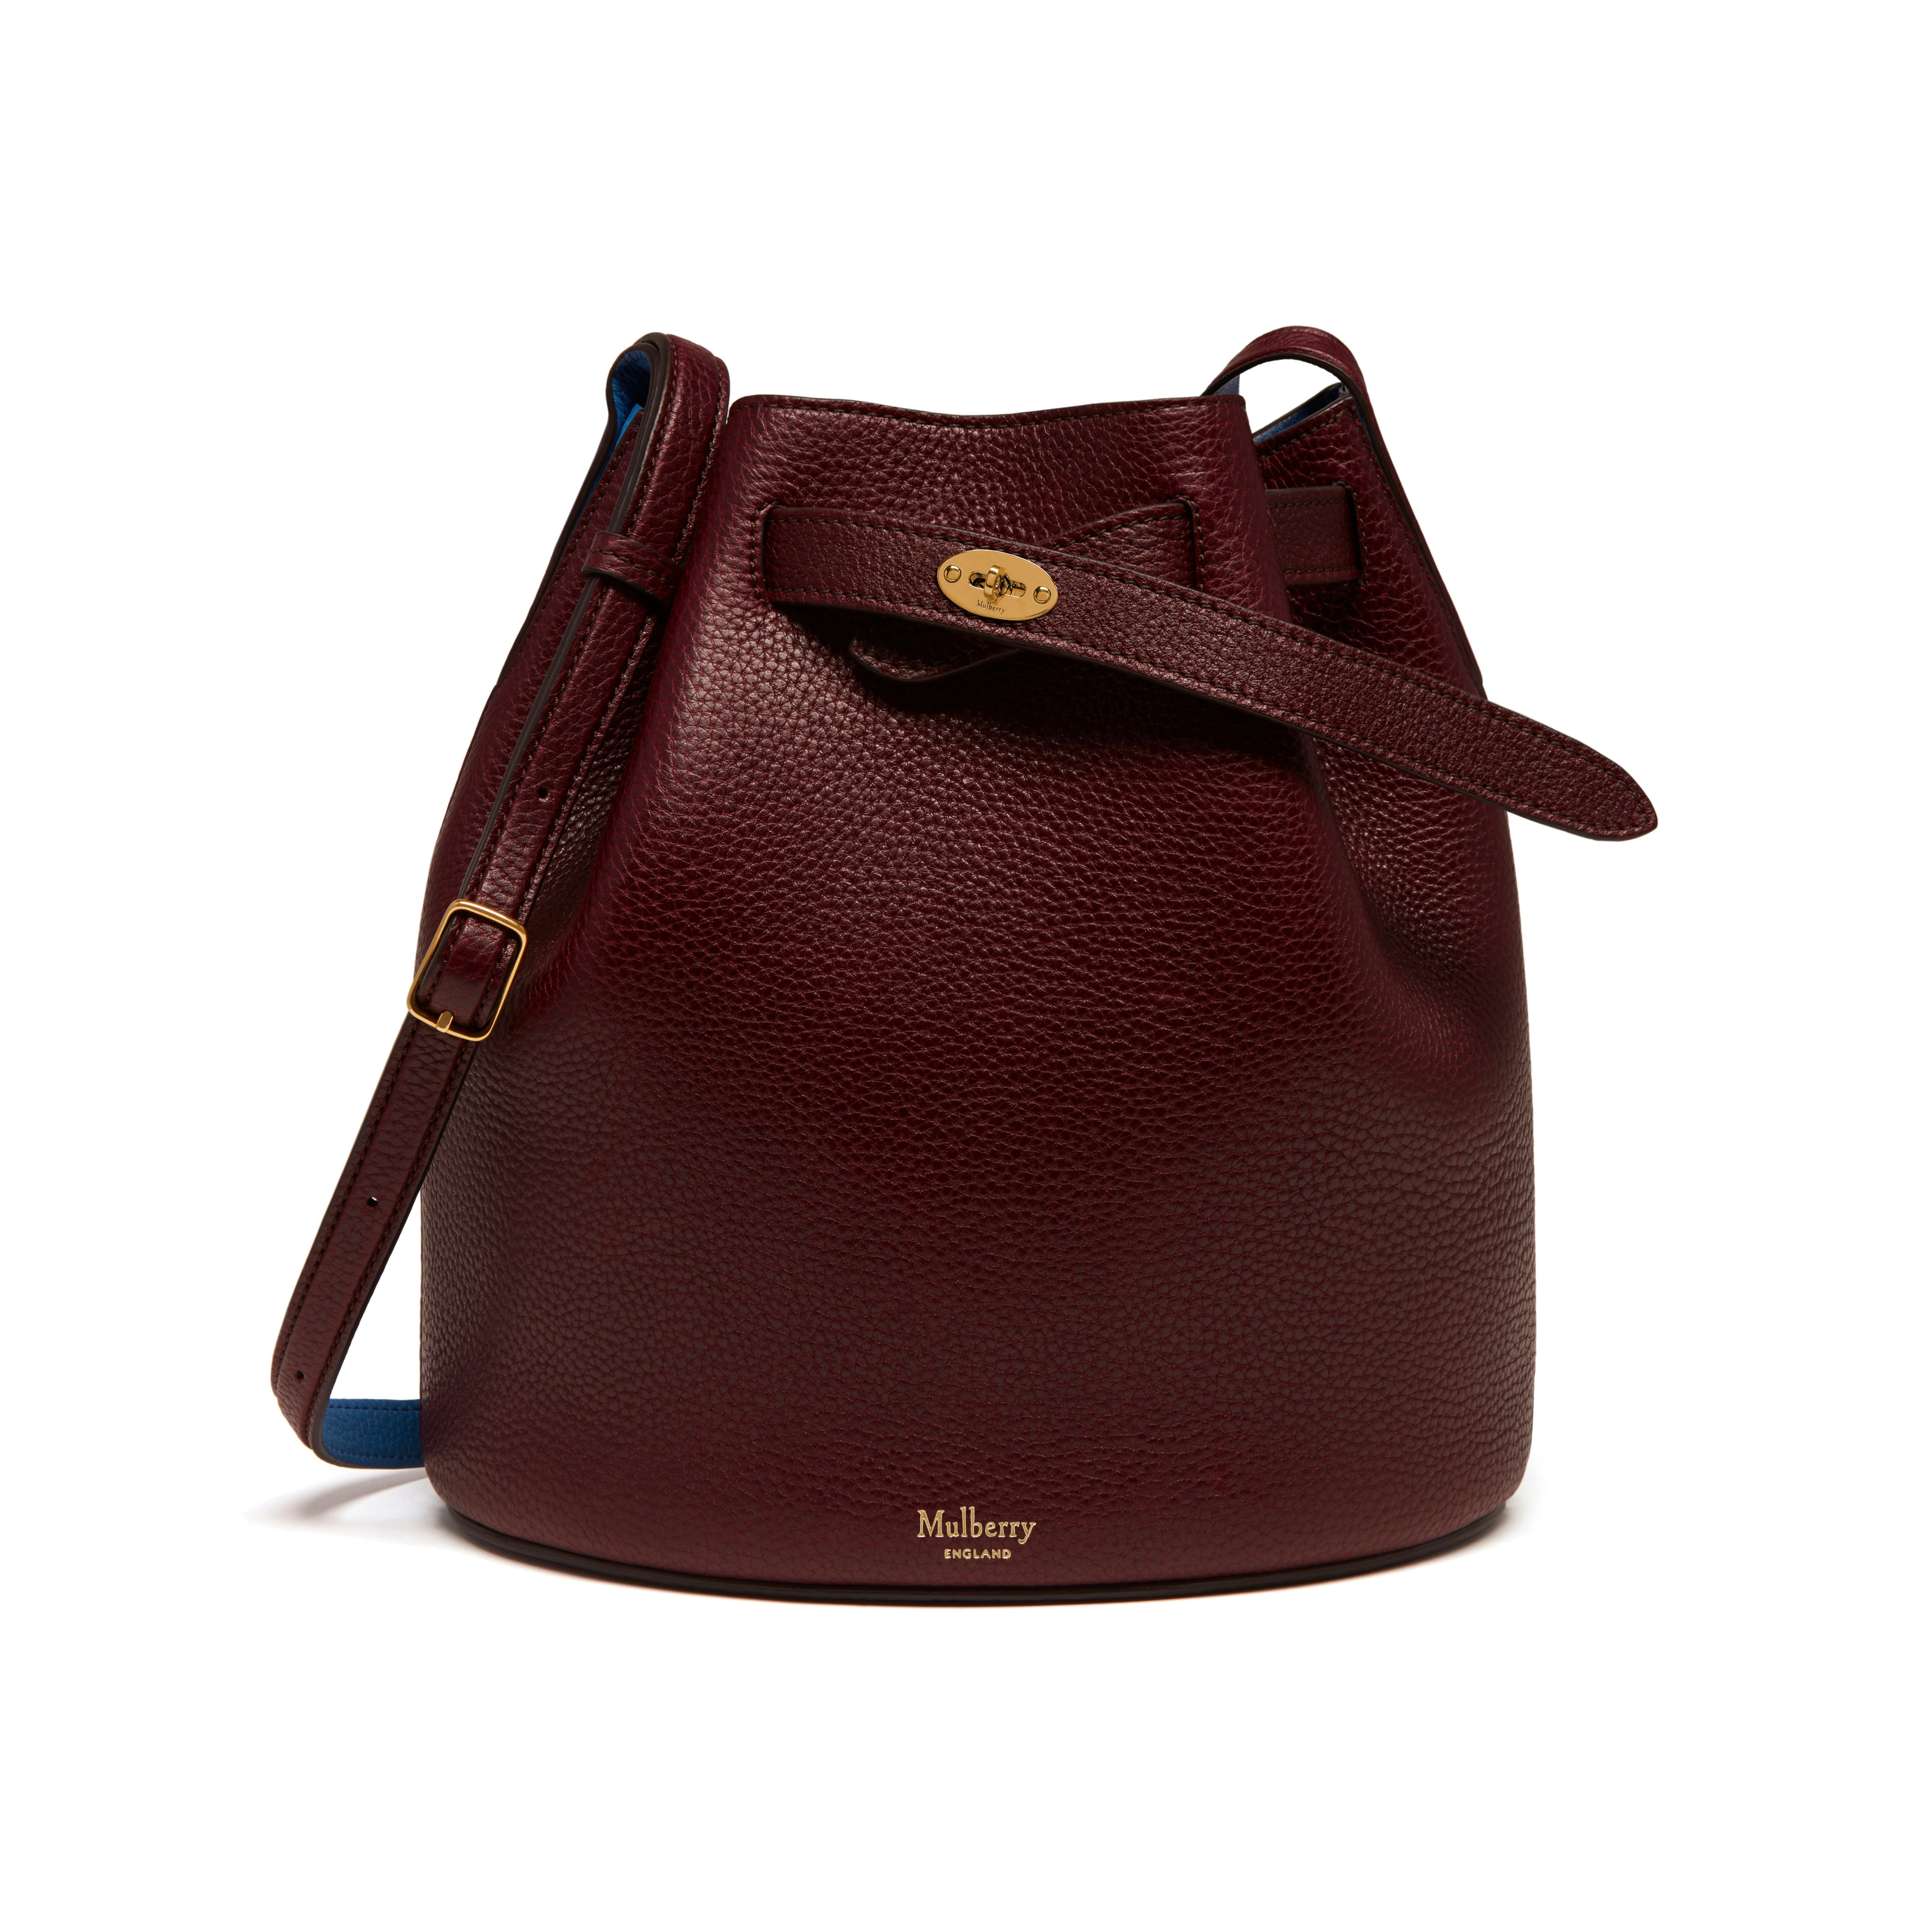 6b0712a0ee Shop the Abbey in Oxblood   Porcelain Blue Small Classic Grain at Mulberry.com.  The Abbey is a traditional  bucket bag  with drawstring detailing